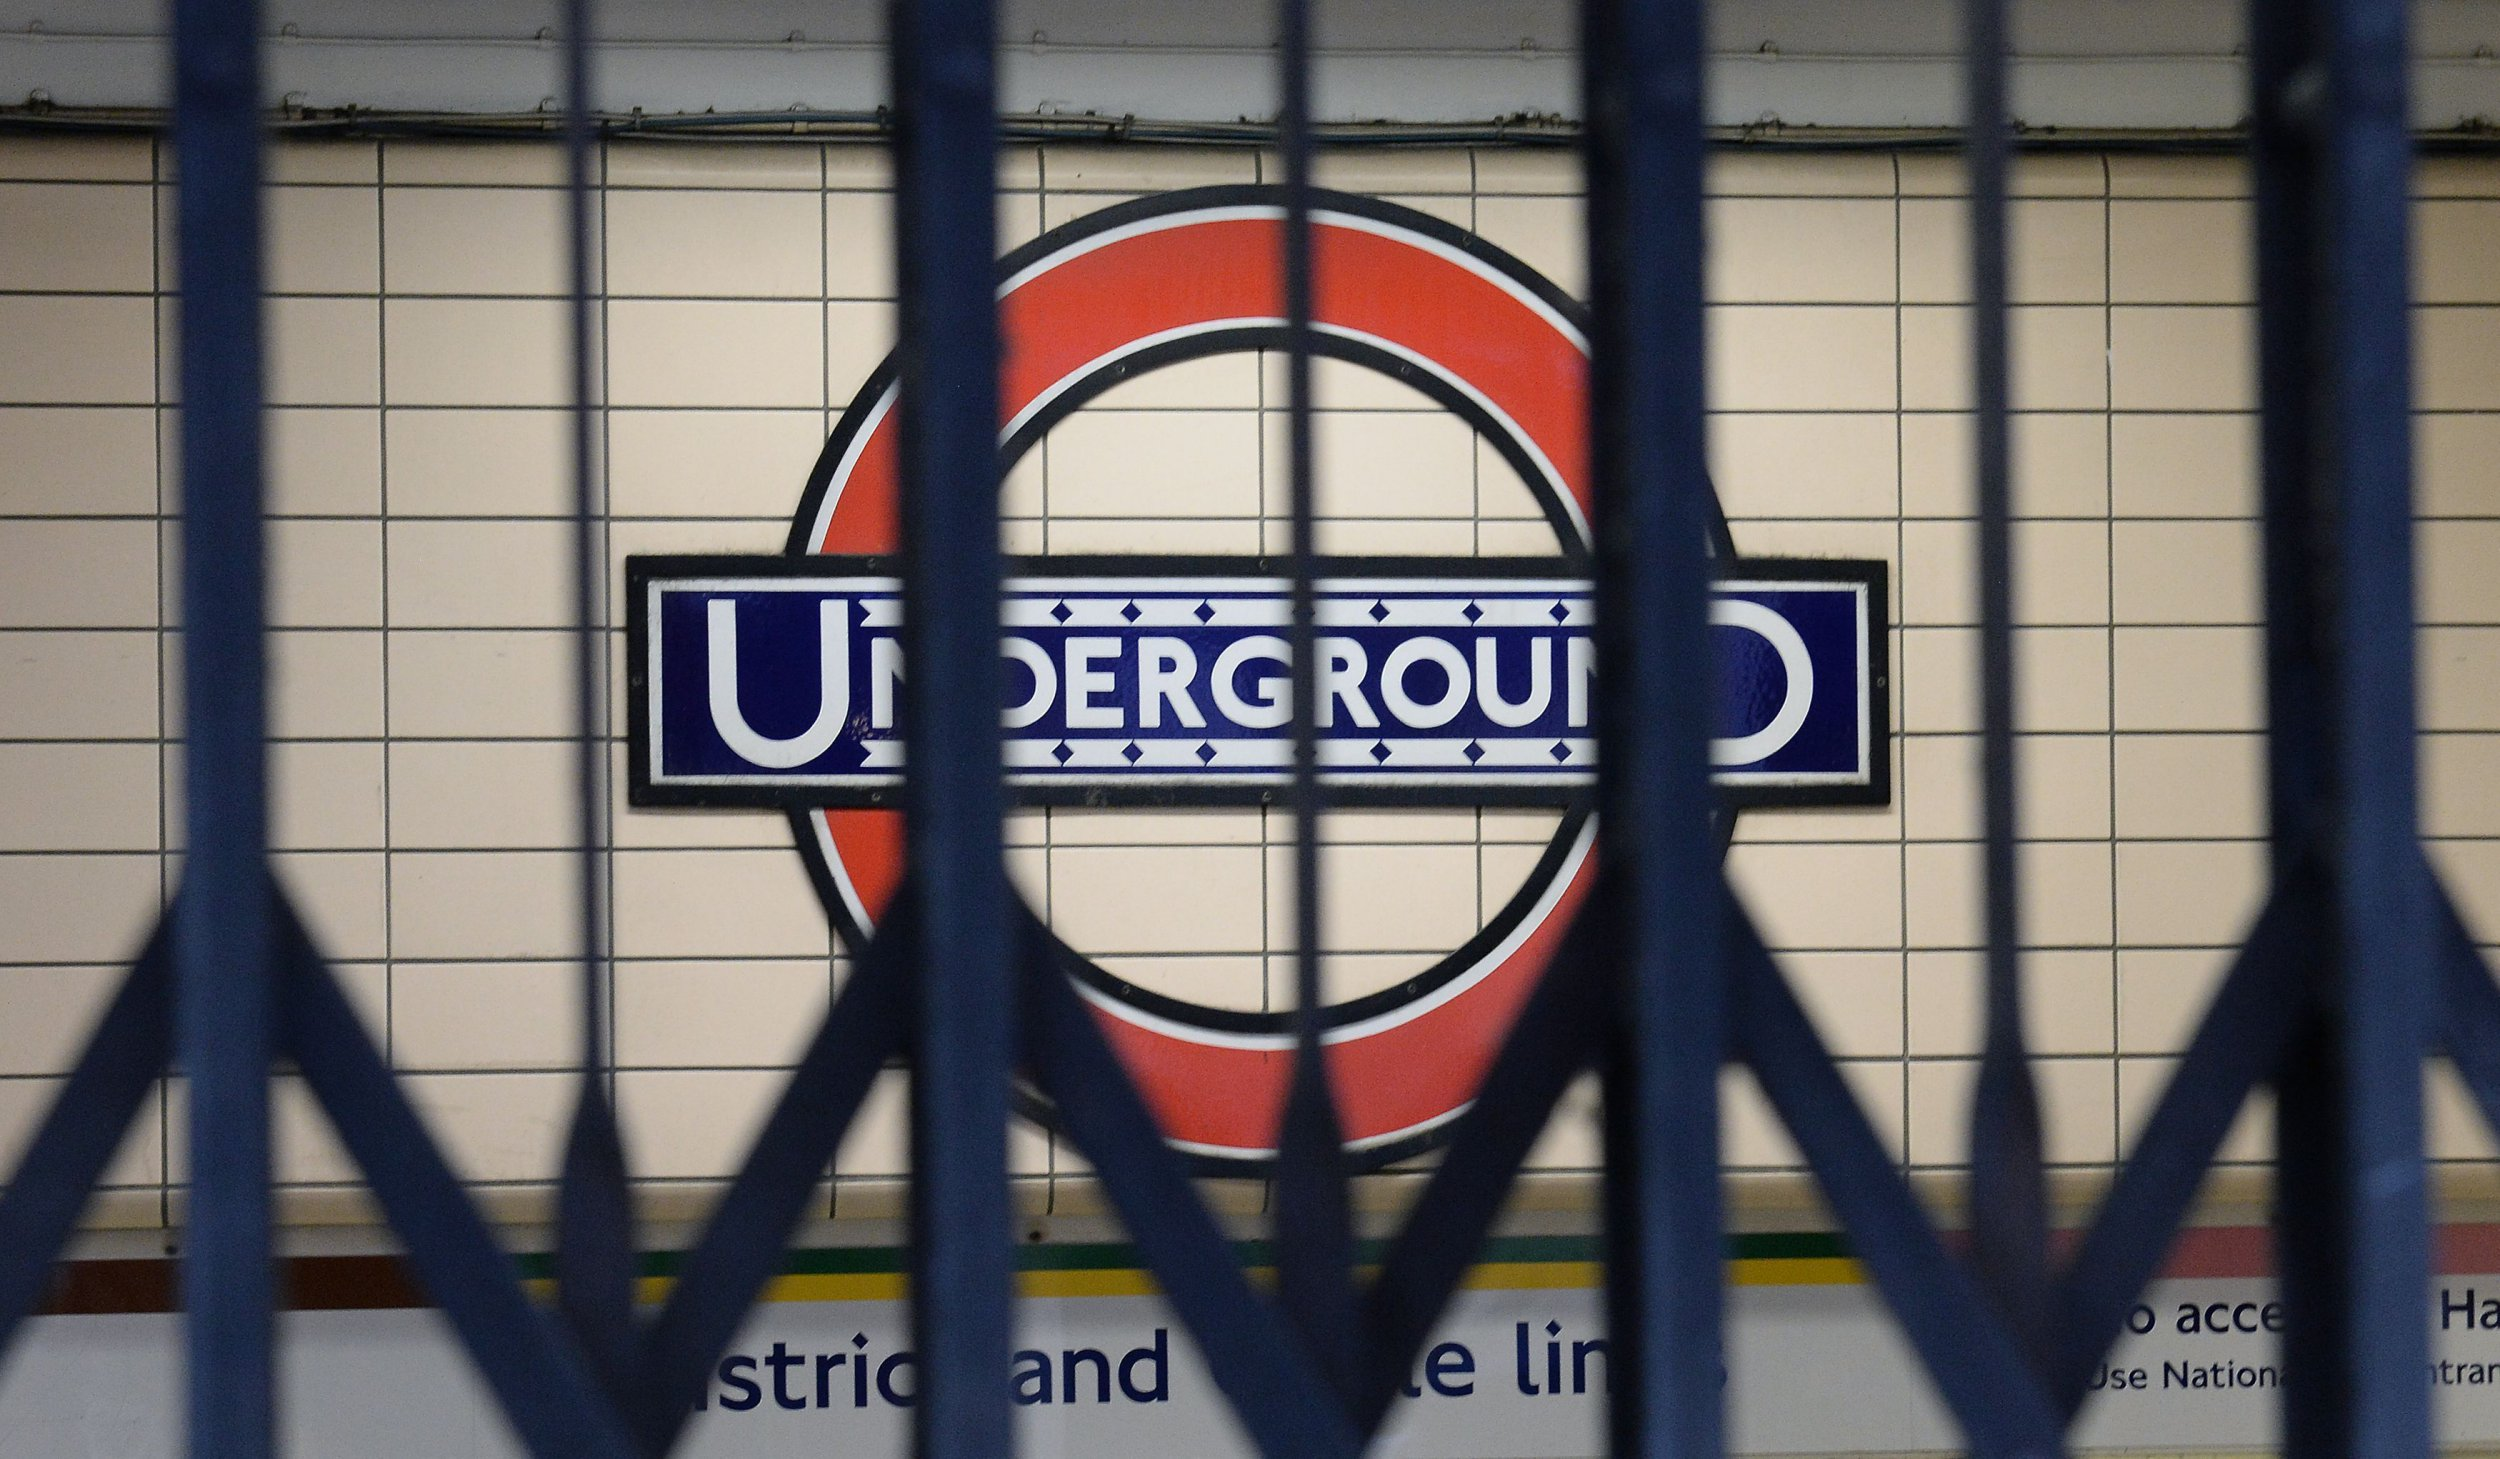 Planned 24-hour Tube strike called off after union talks